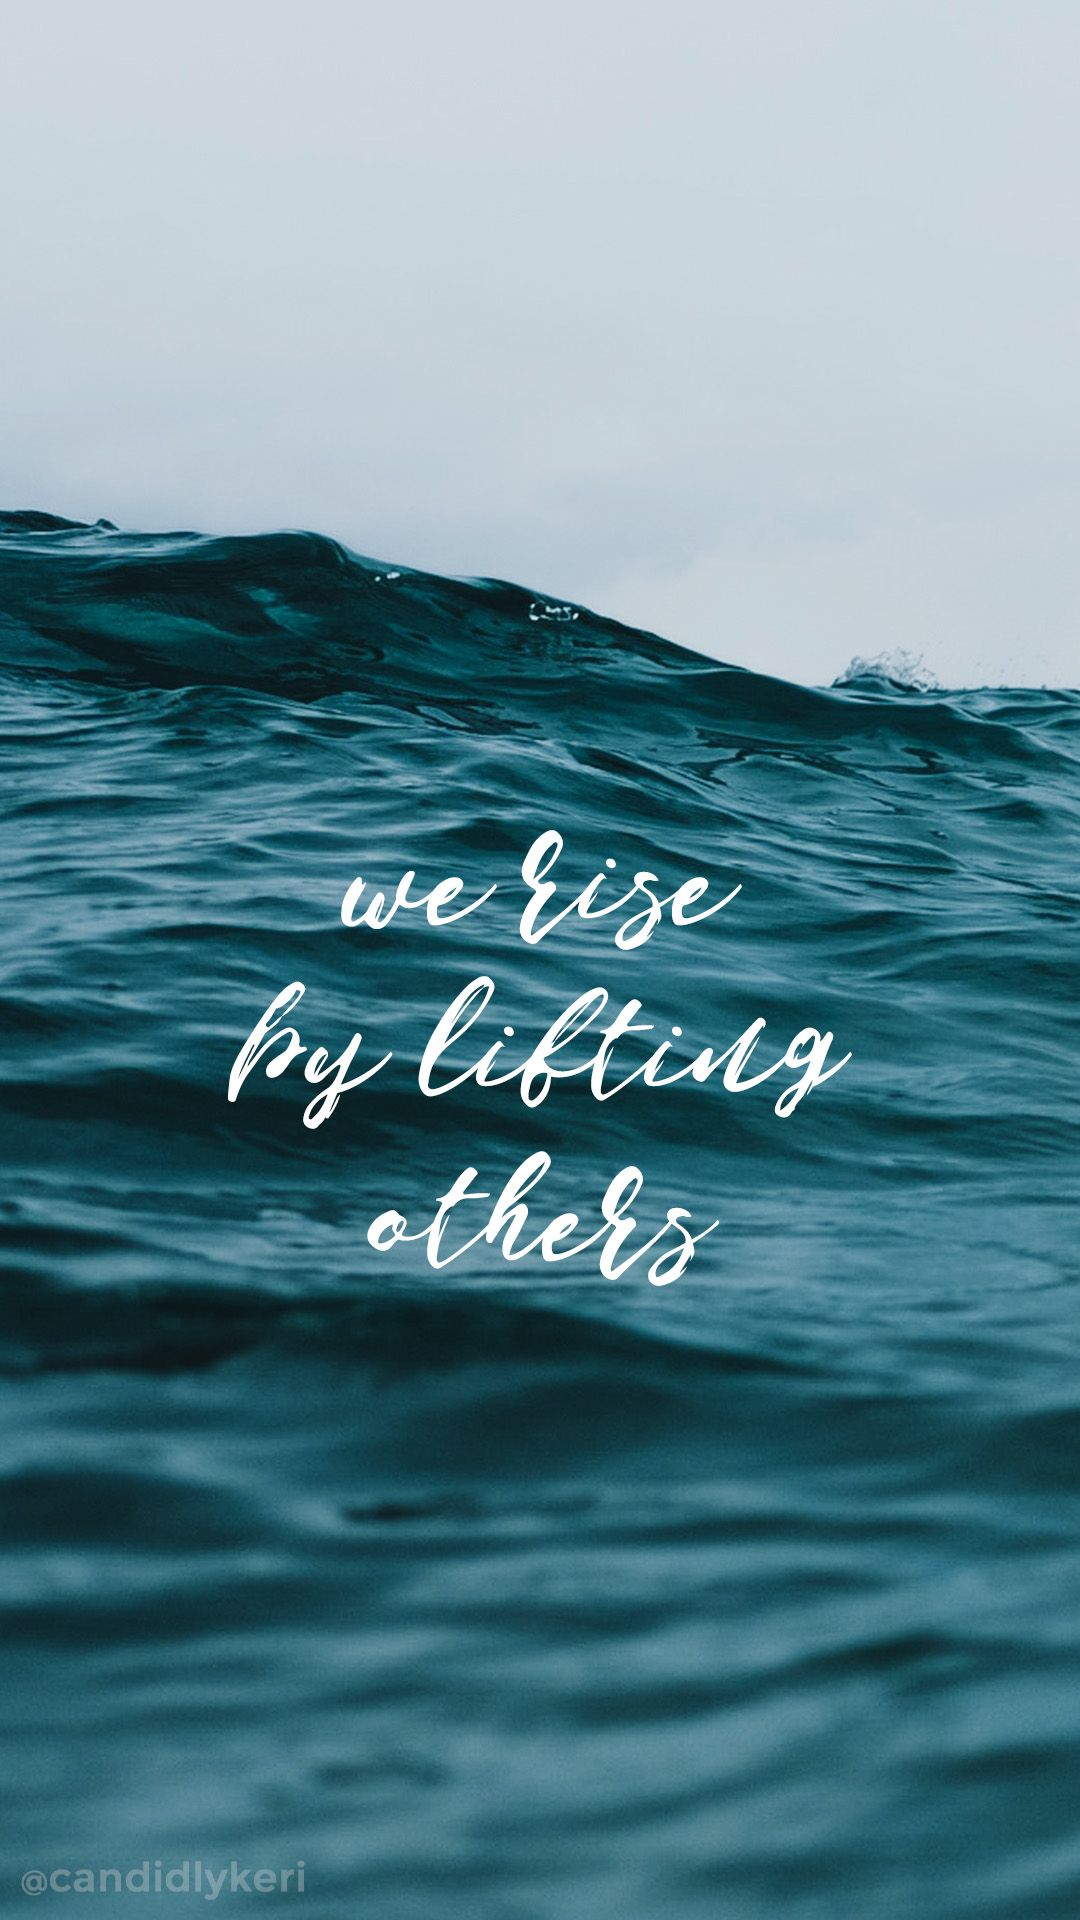 we rise by lifting others ocean wave beach quote inspirational wallpaper you can download for free on the blog for any device mobile desktop iphone